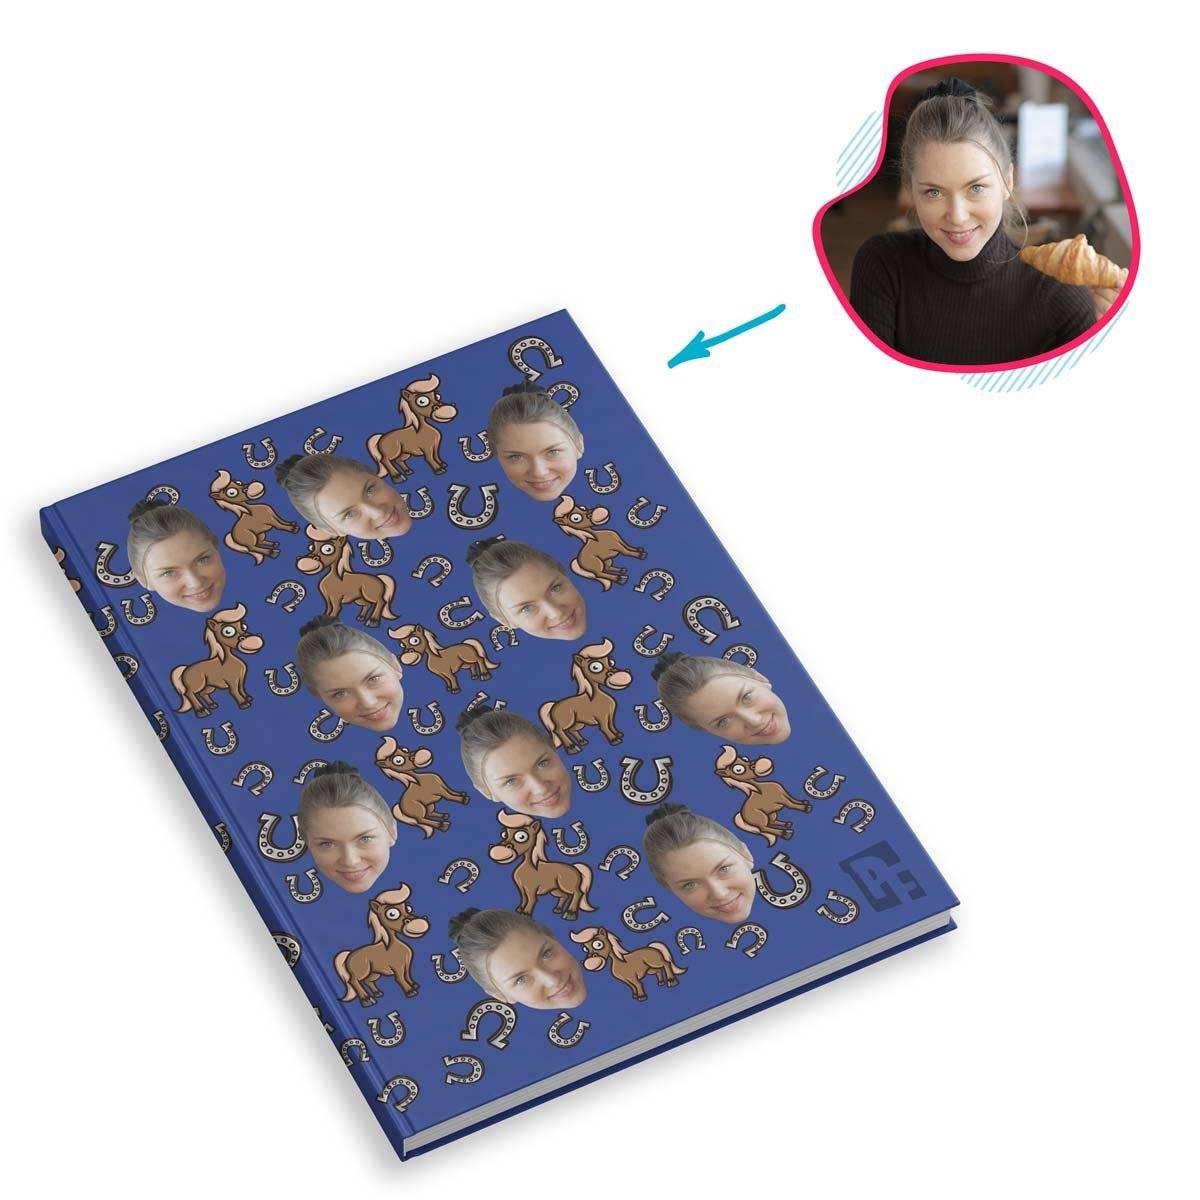 darkblue Horse Notebook personalized with photo of face printed on them